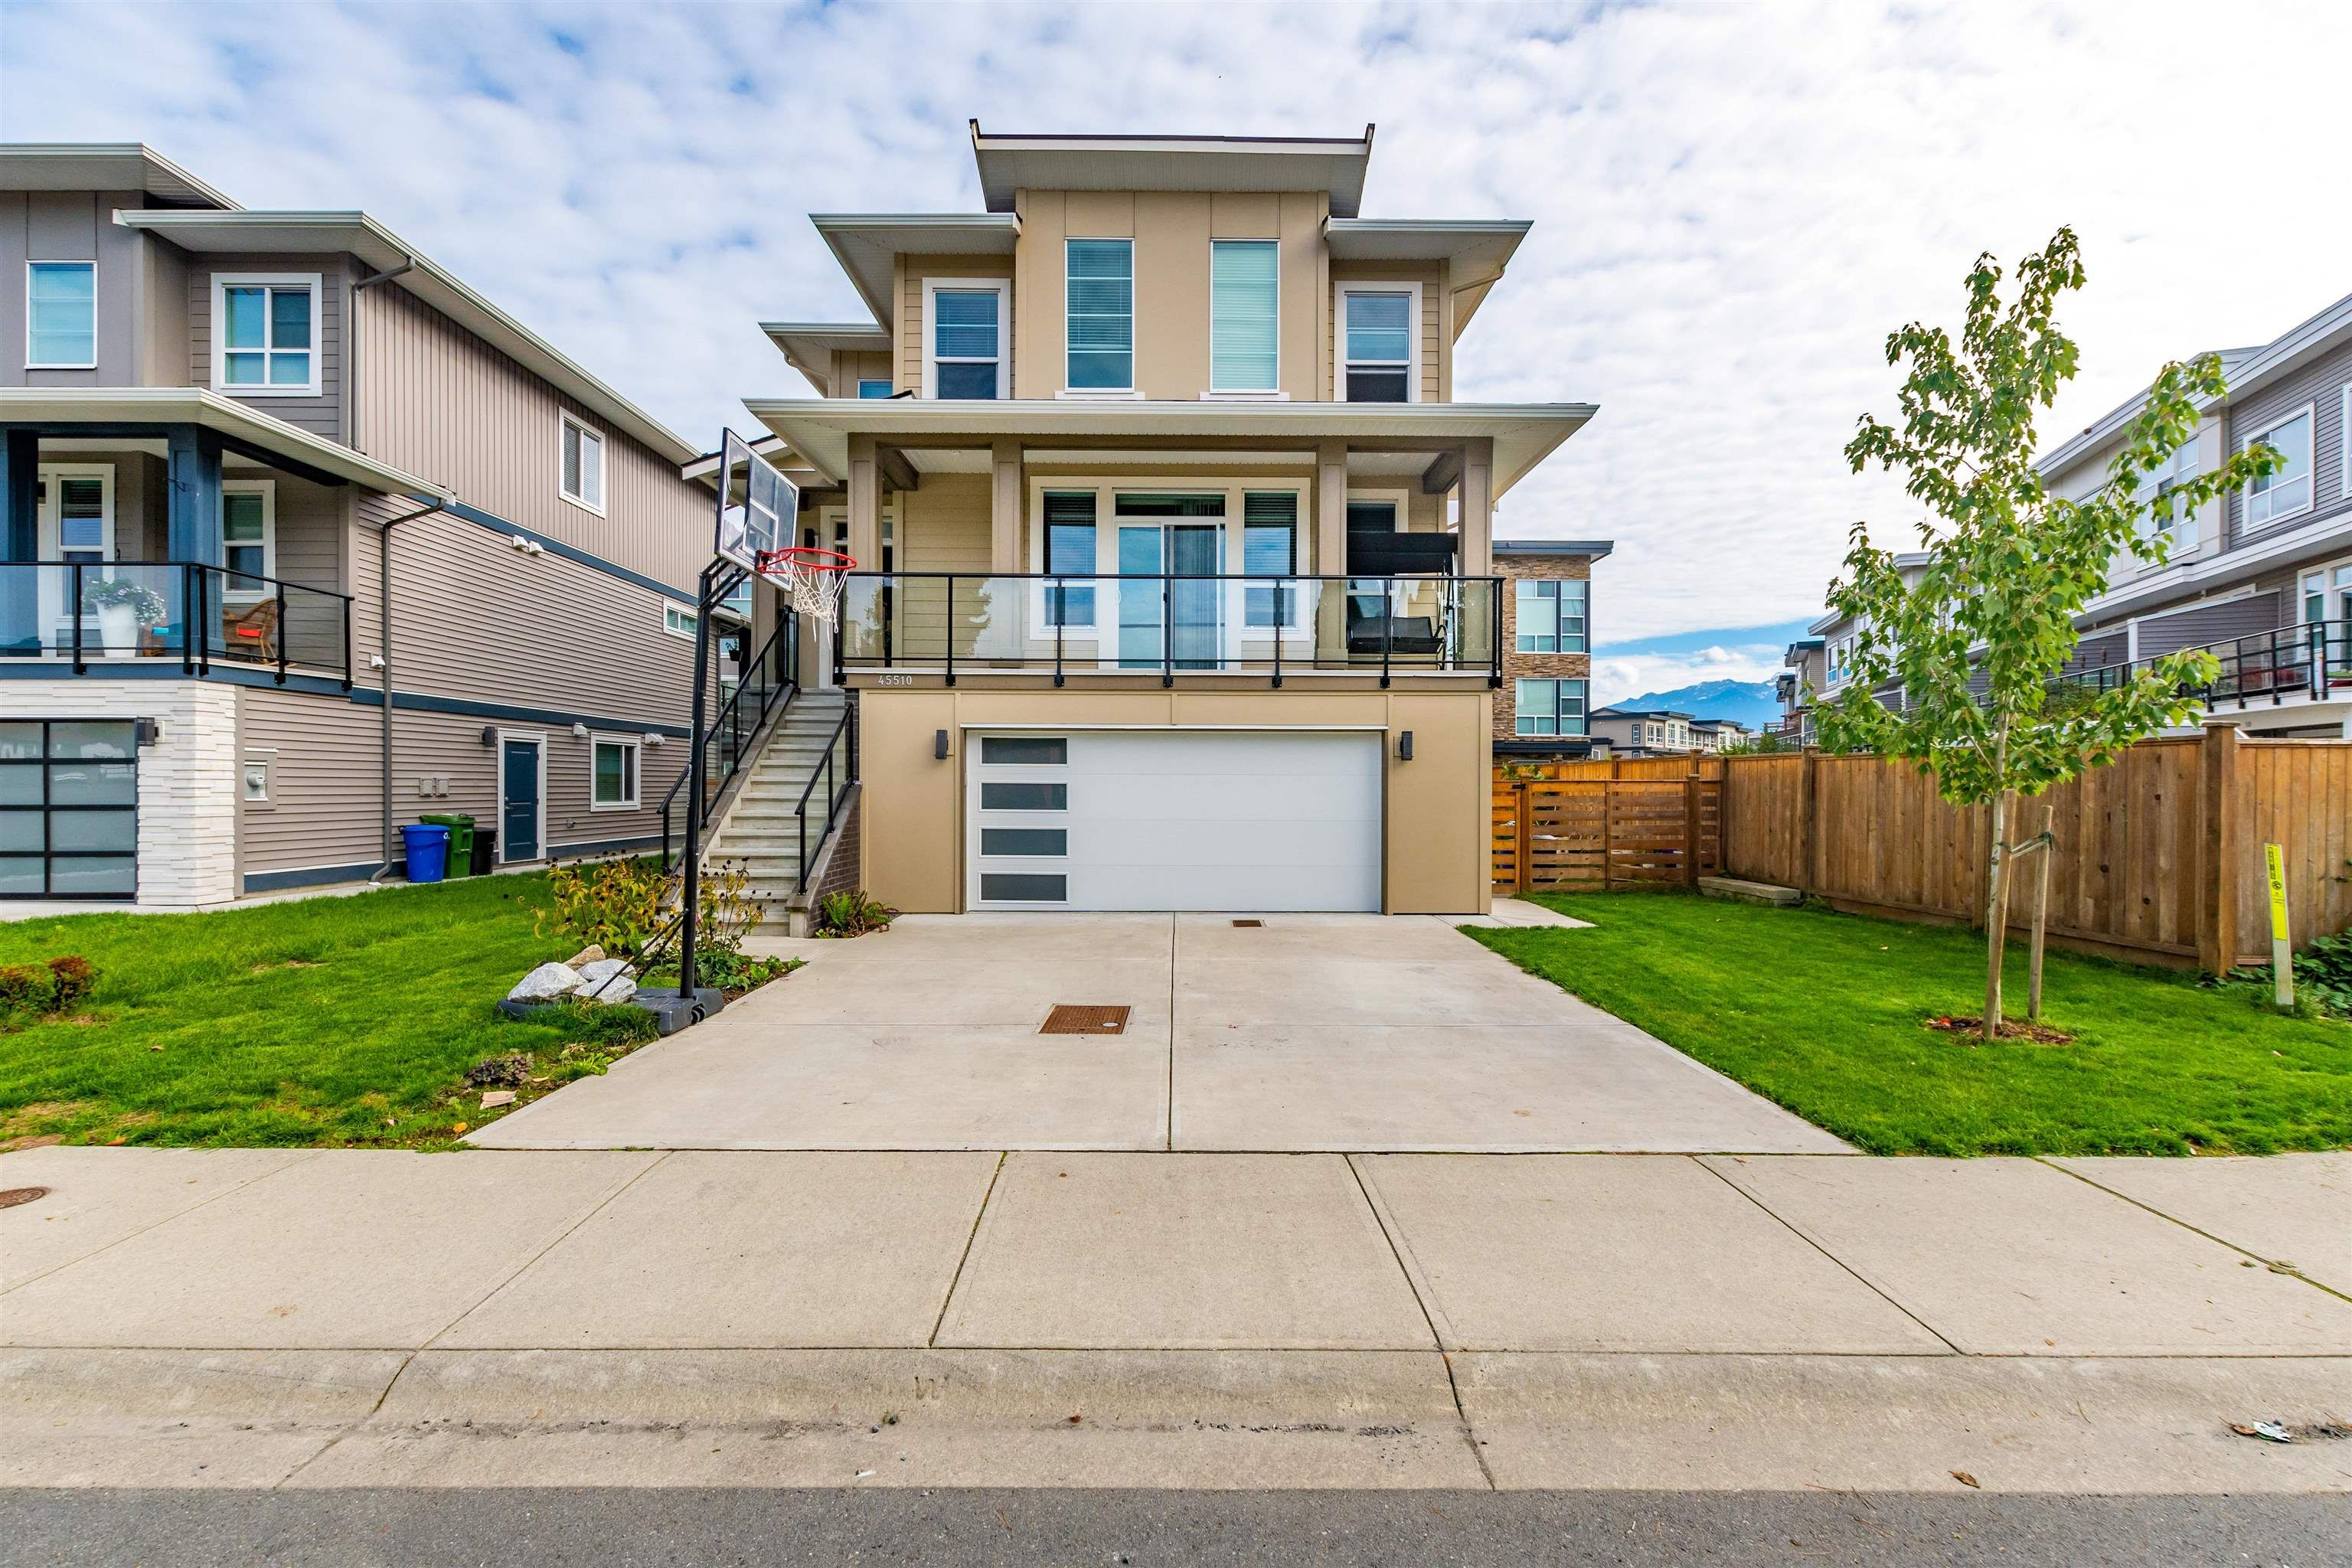 Main Photo: 45510 MEADOWBROOK Drive in Chilliwack: Chilliwack W Young-Well House for sale : MLS®# R2625283